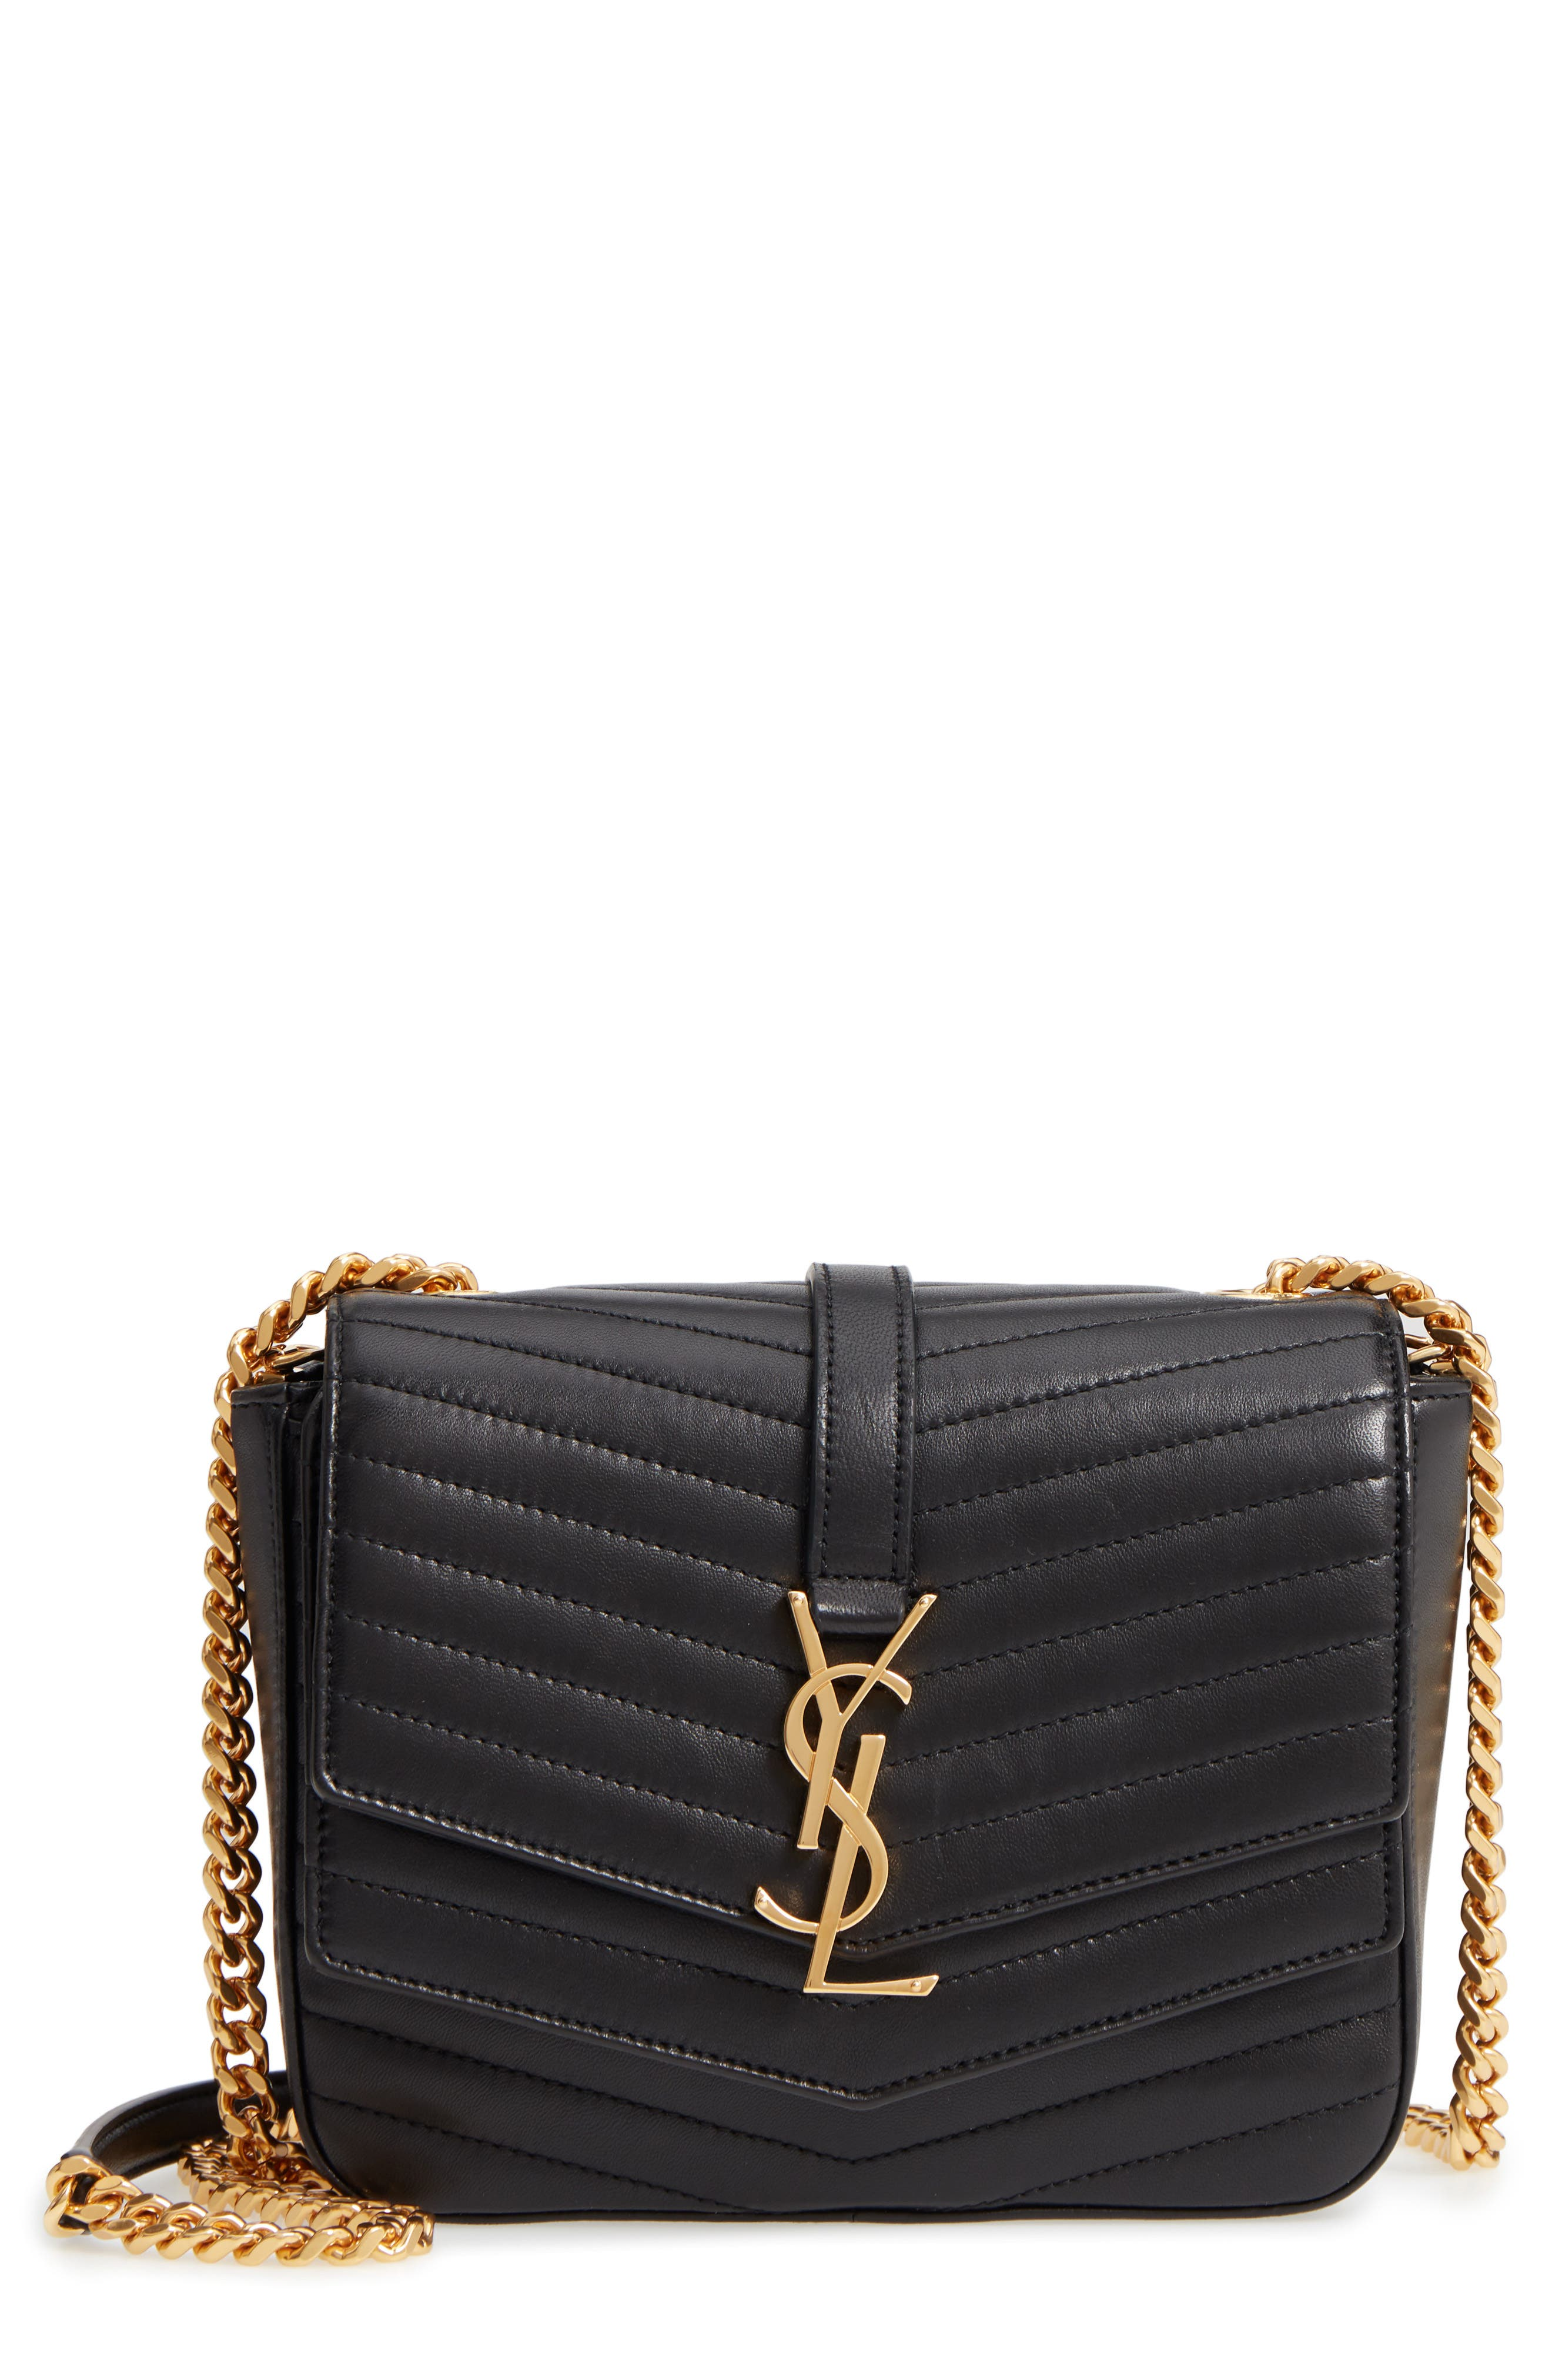 Montaigne Quilted Lambskin Crossbody Bag,                             Main thumbnail 1, color,                             NERO